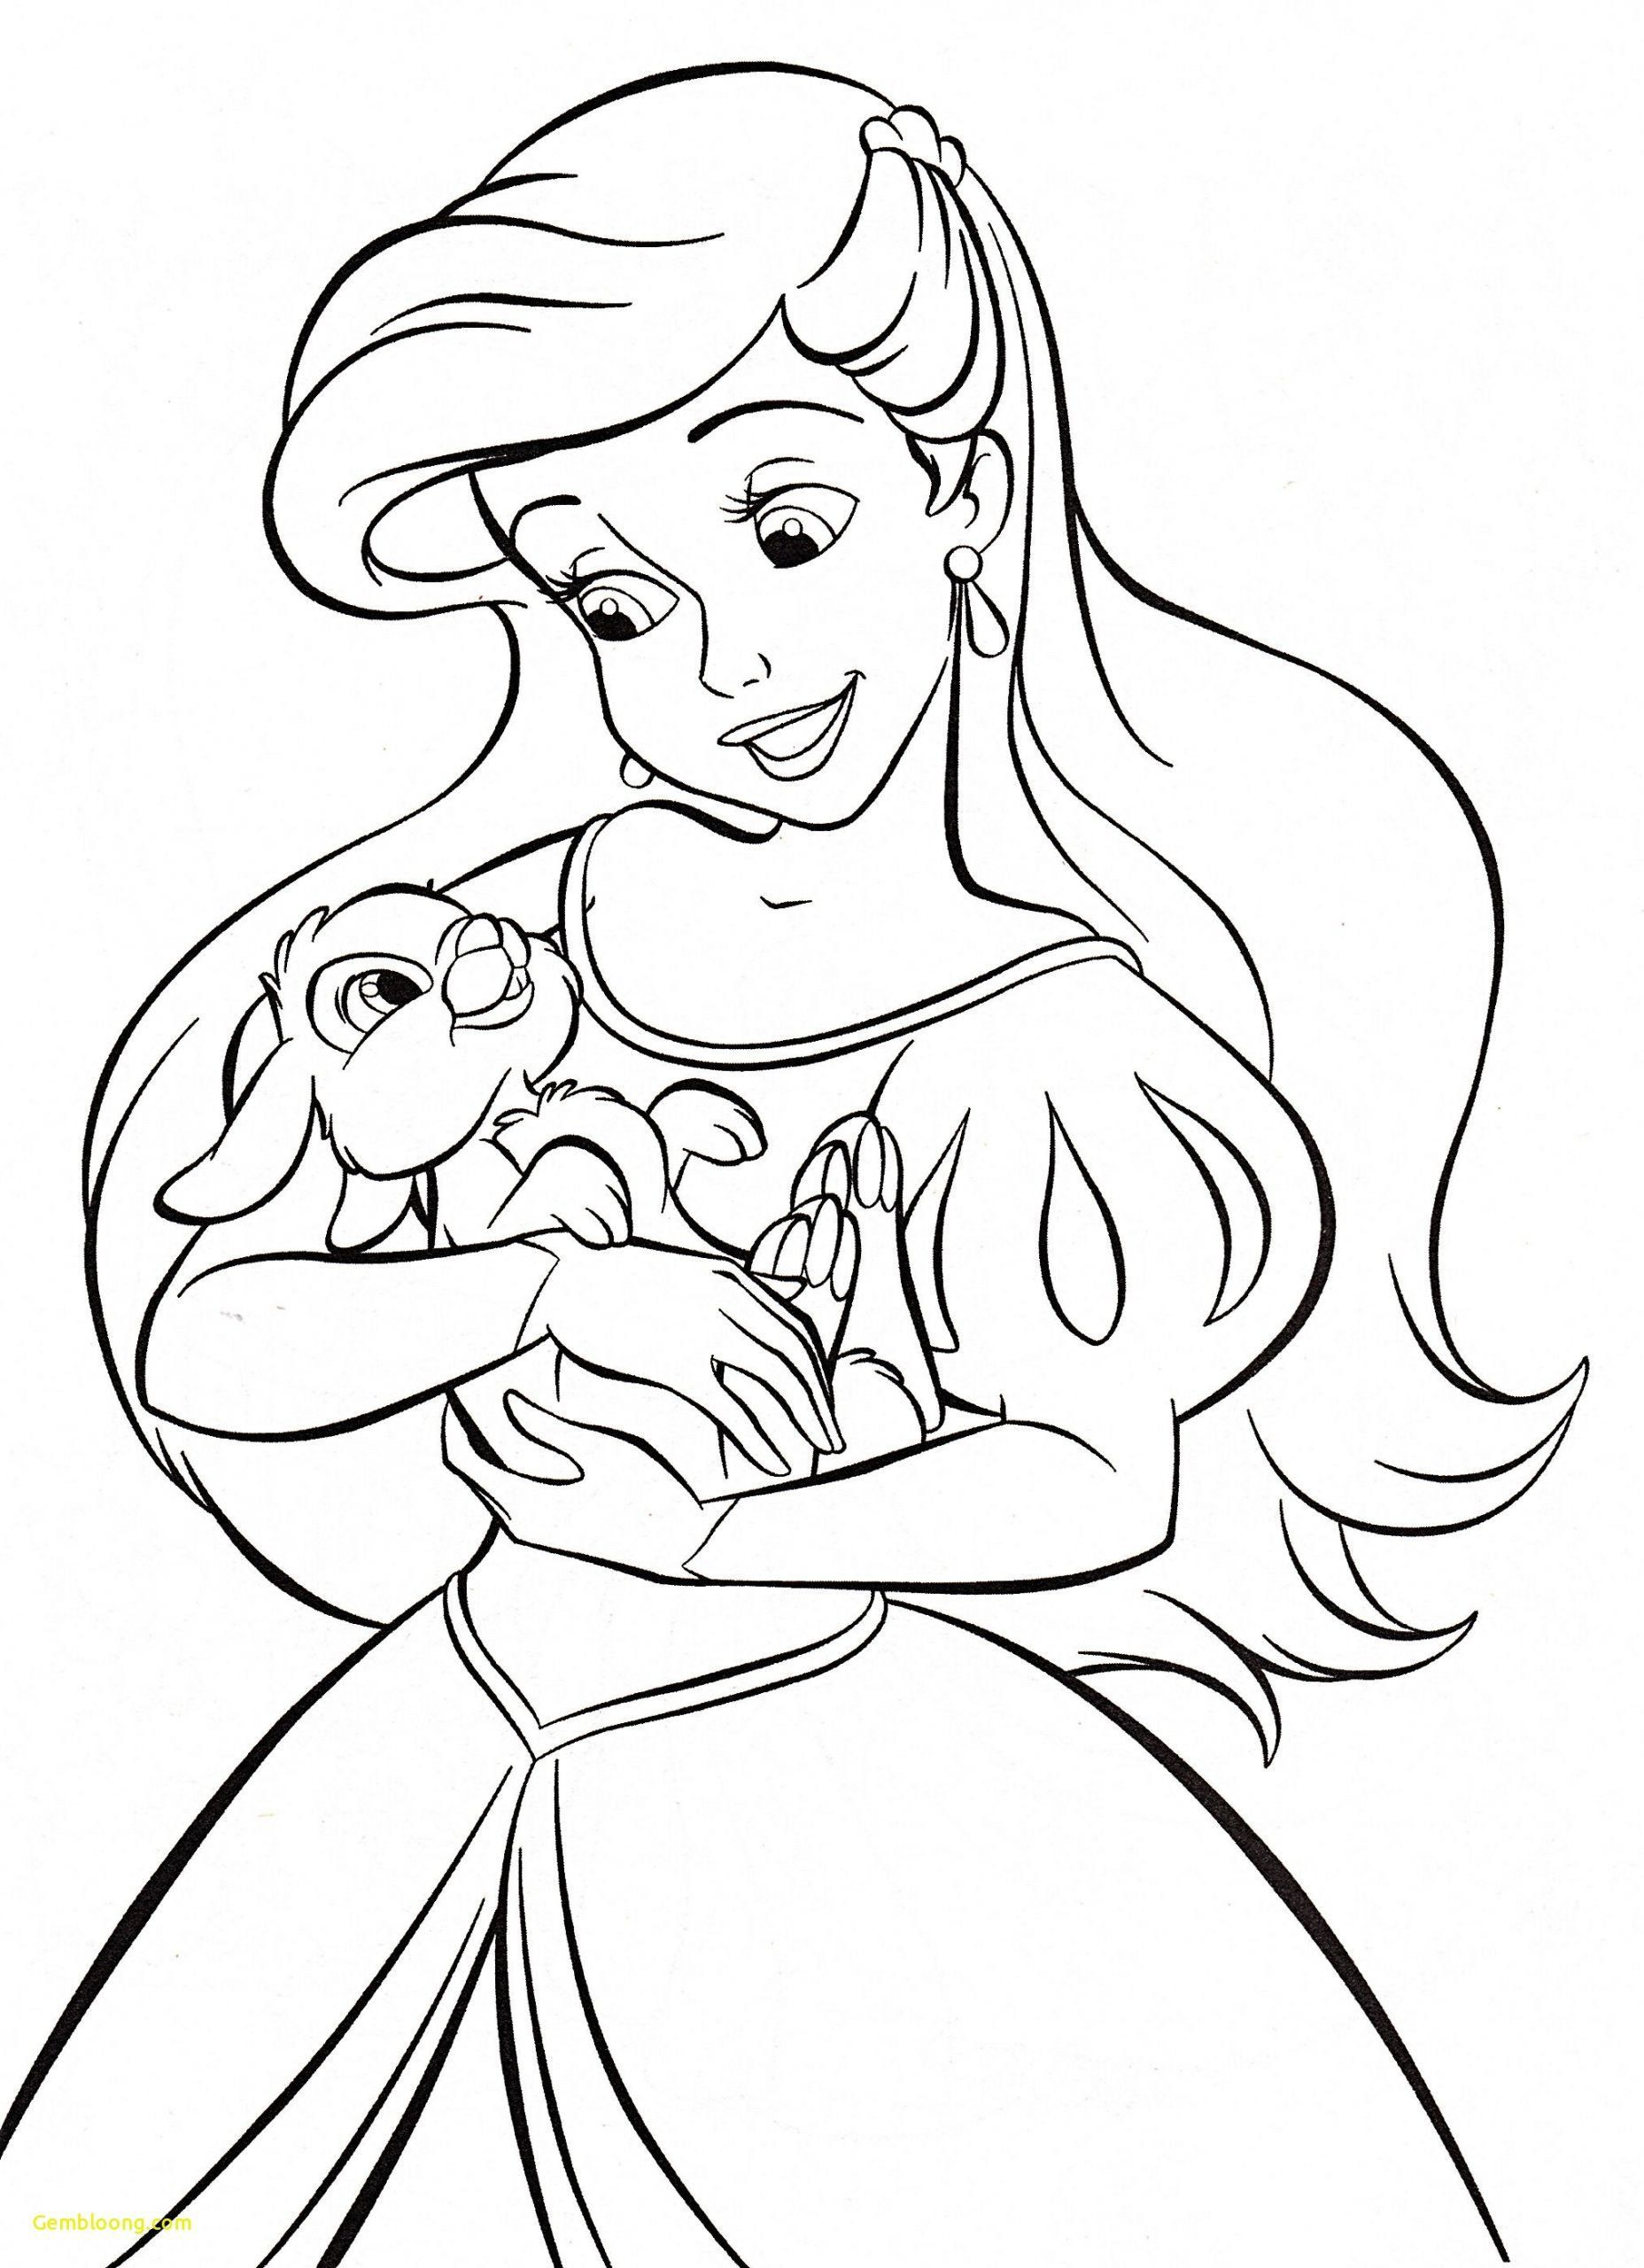 Disney Coloring Pages Ariel Coloring Pages Little Mermaid Coloring Book New Walt In 2020 Disney Princess Coloring Pages Ariel Coloring Pages Mermaid Coloring Pages